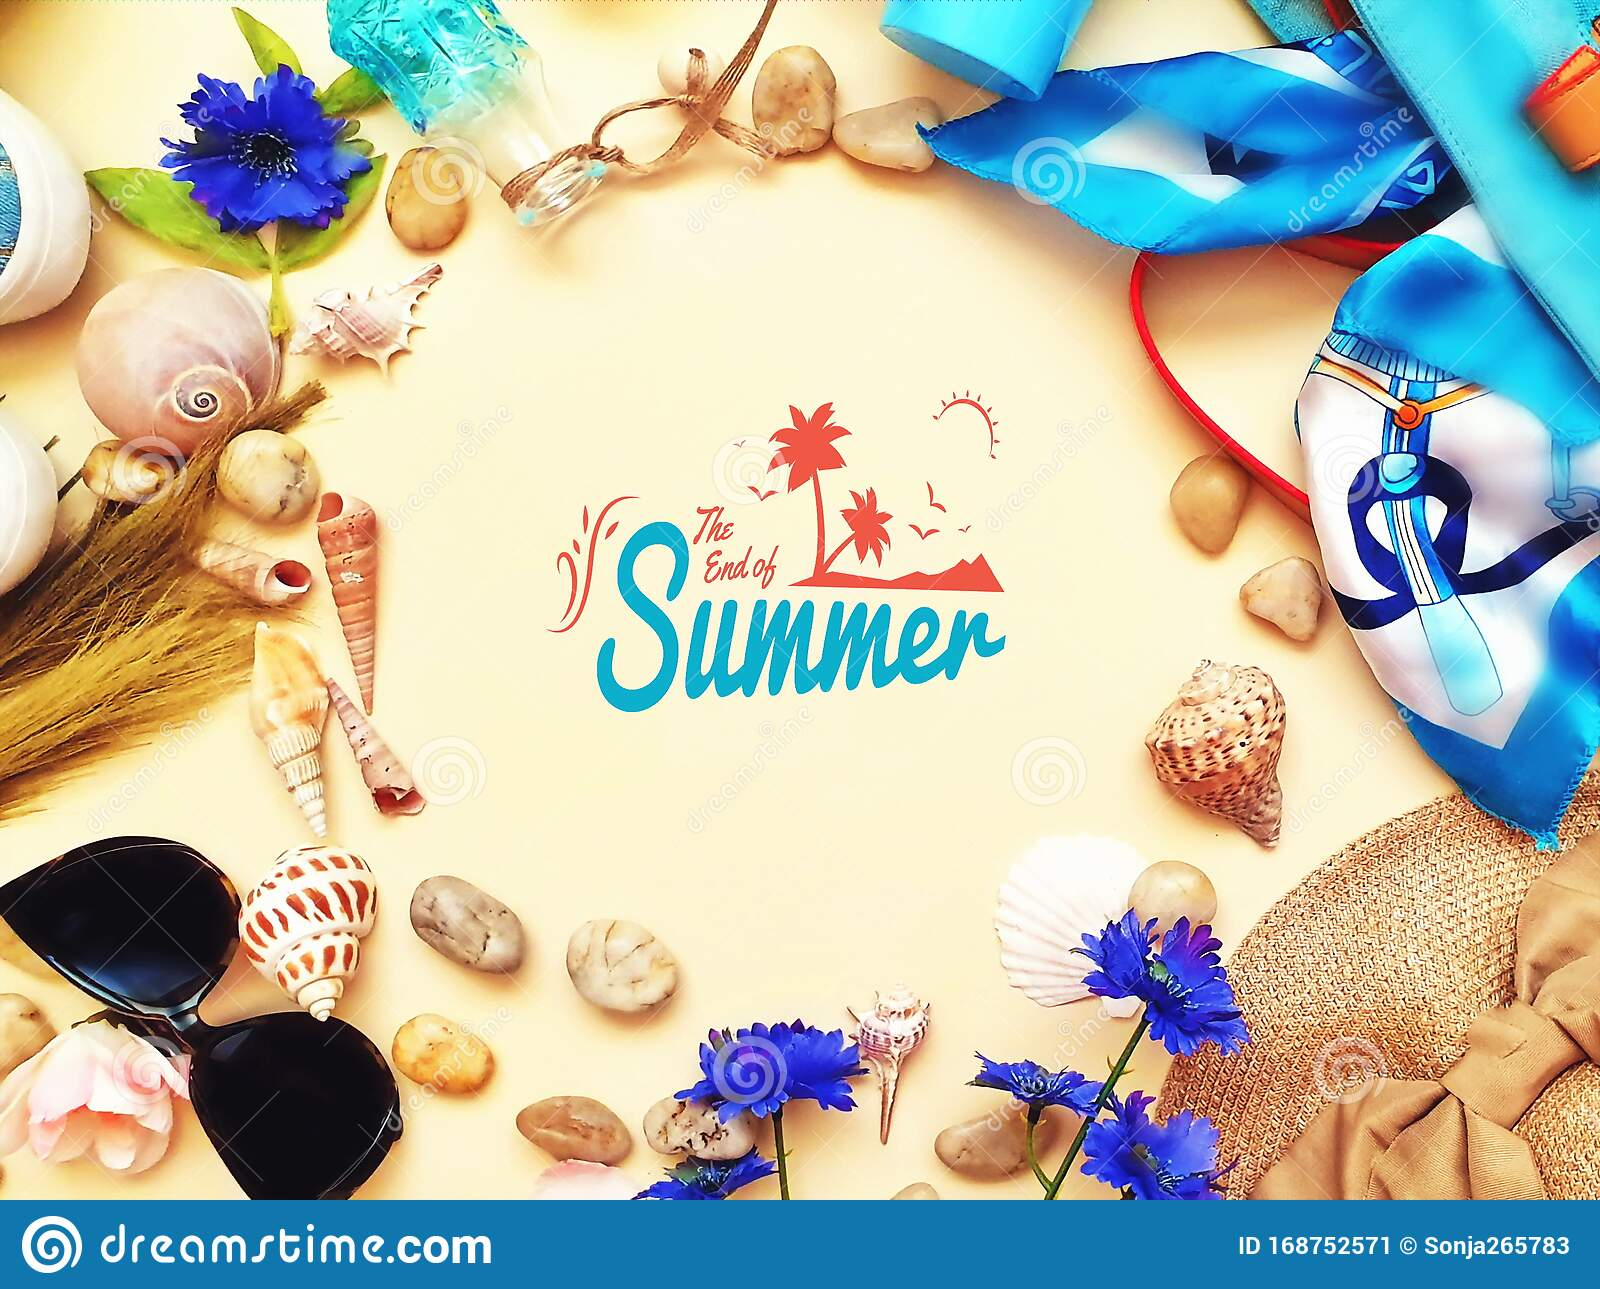 summer women accessories and clothes weekend beachwear for leisure